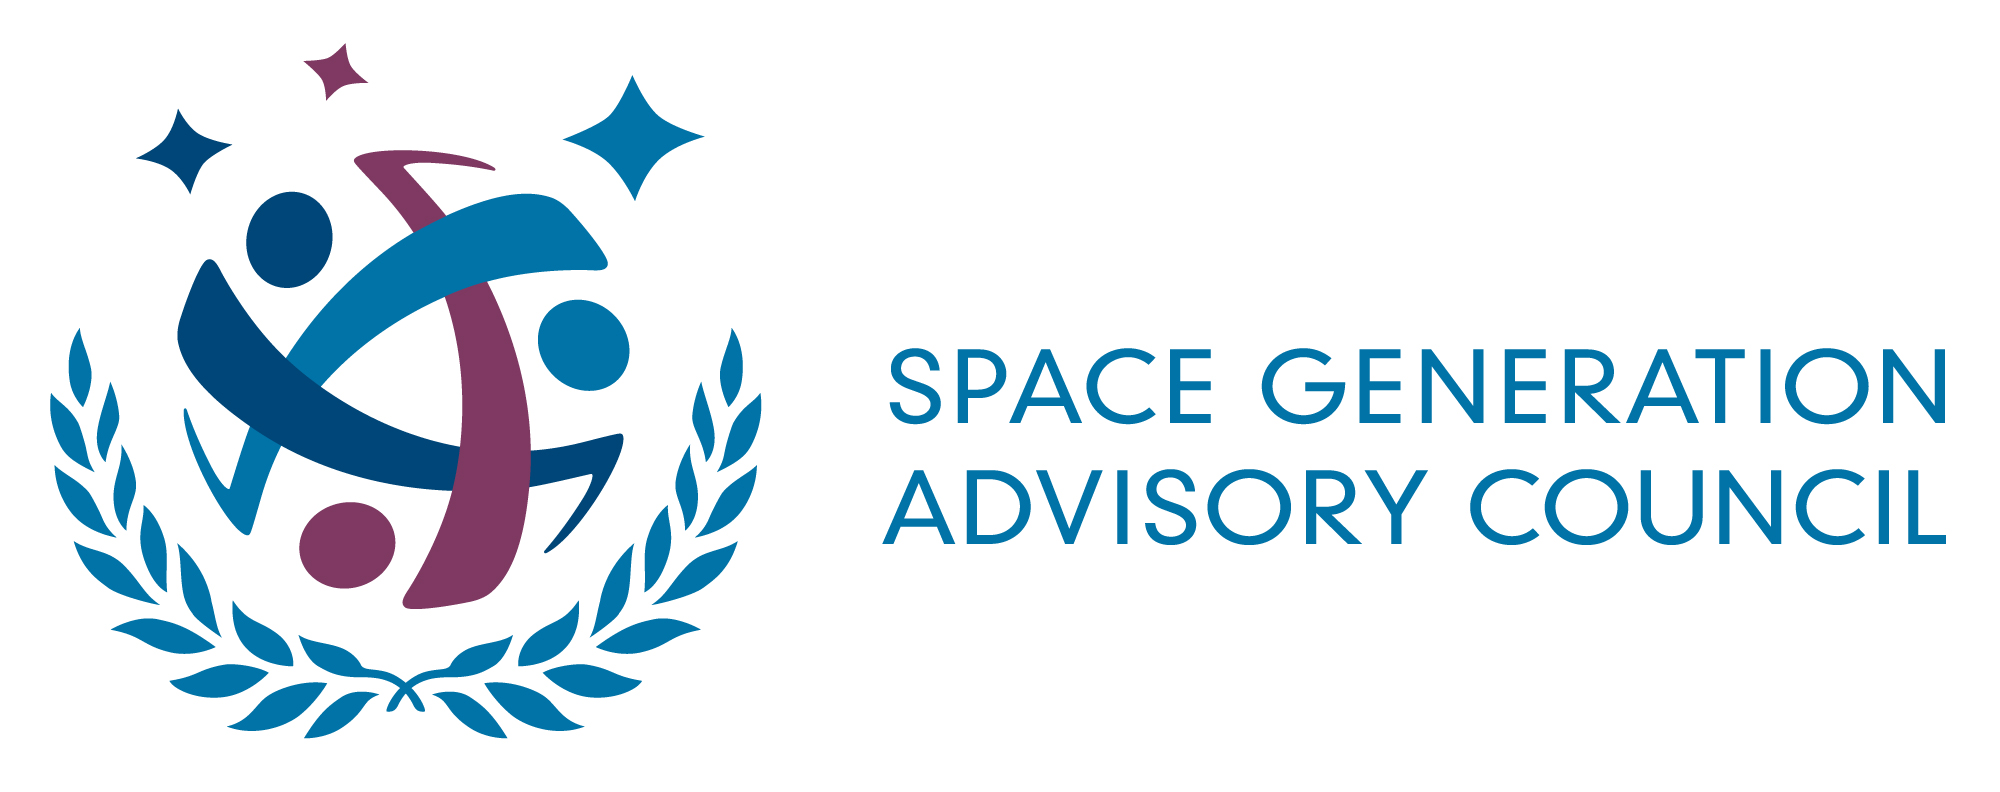 logo for Space Generation Advisory Council in Support of the United Nations Programme on Space Applications